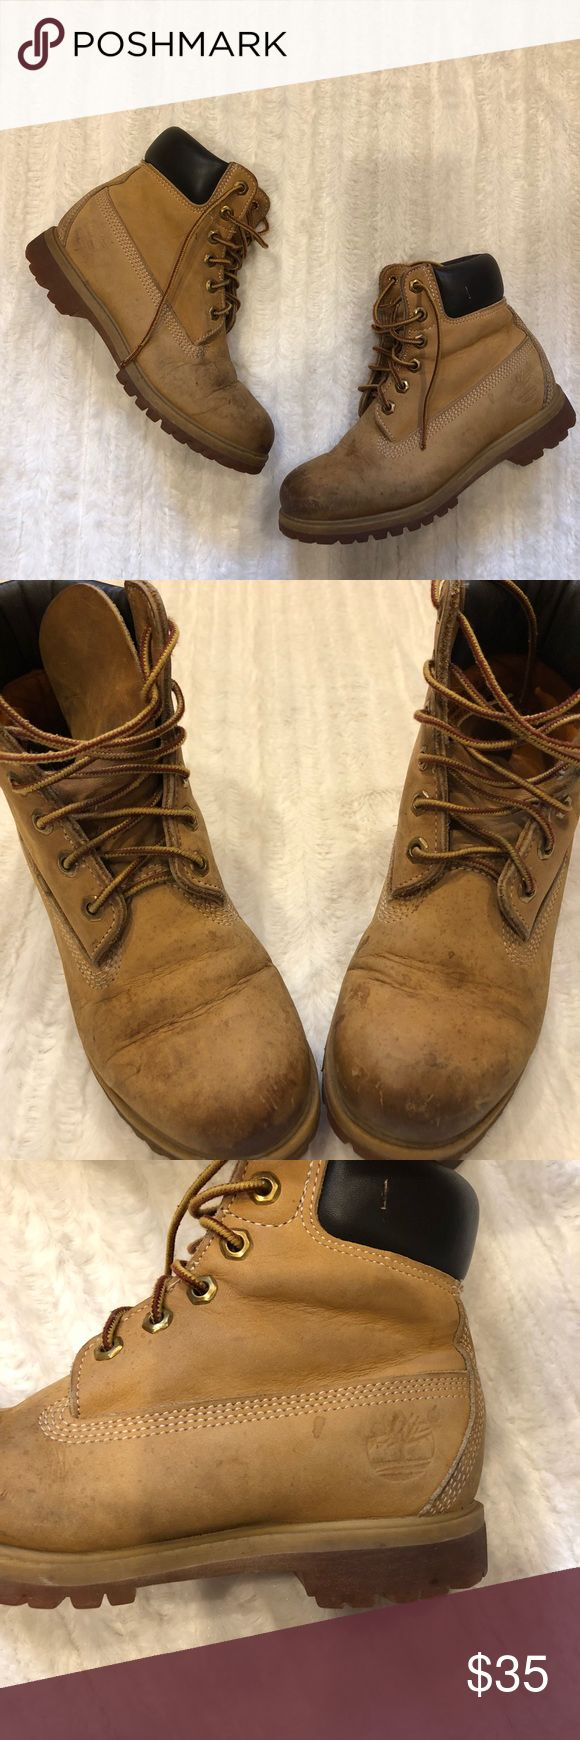 Timberland Women's Boots Size 6 These are well worn Timberland boots as shown in the pictures.  But they still have life left!  Price is negotiable. Size 6. Timberland Shoes Lace Up Boots